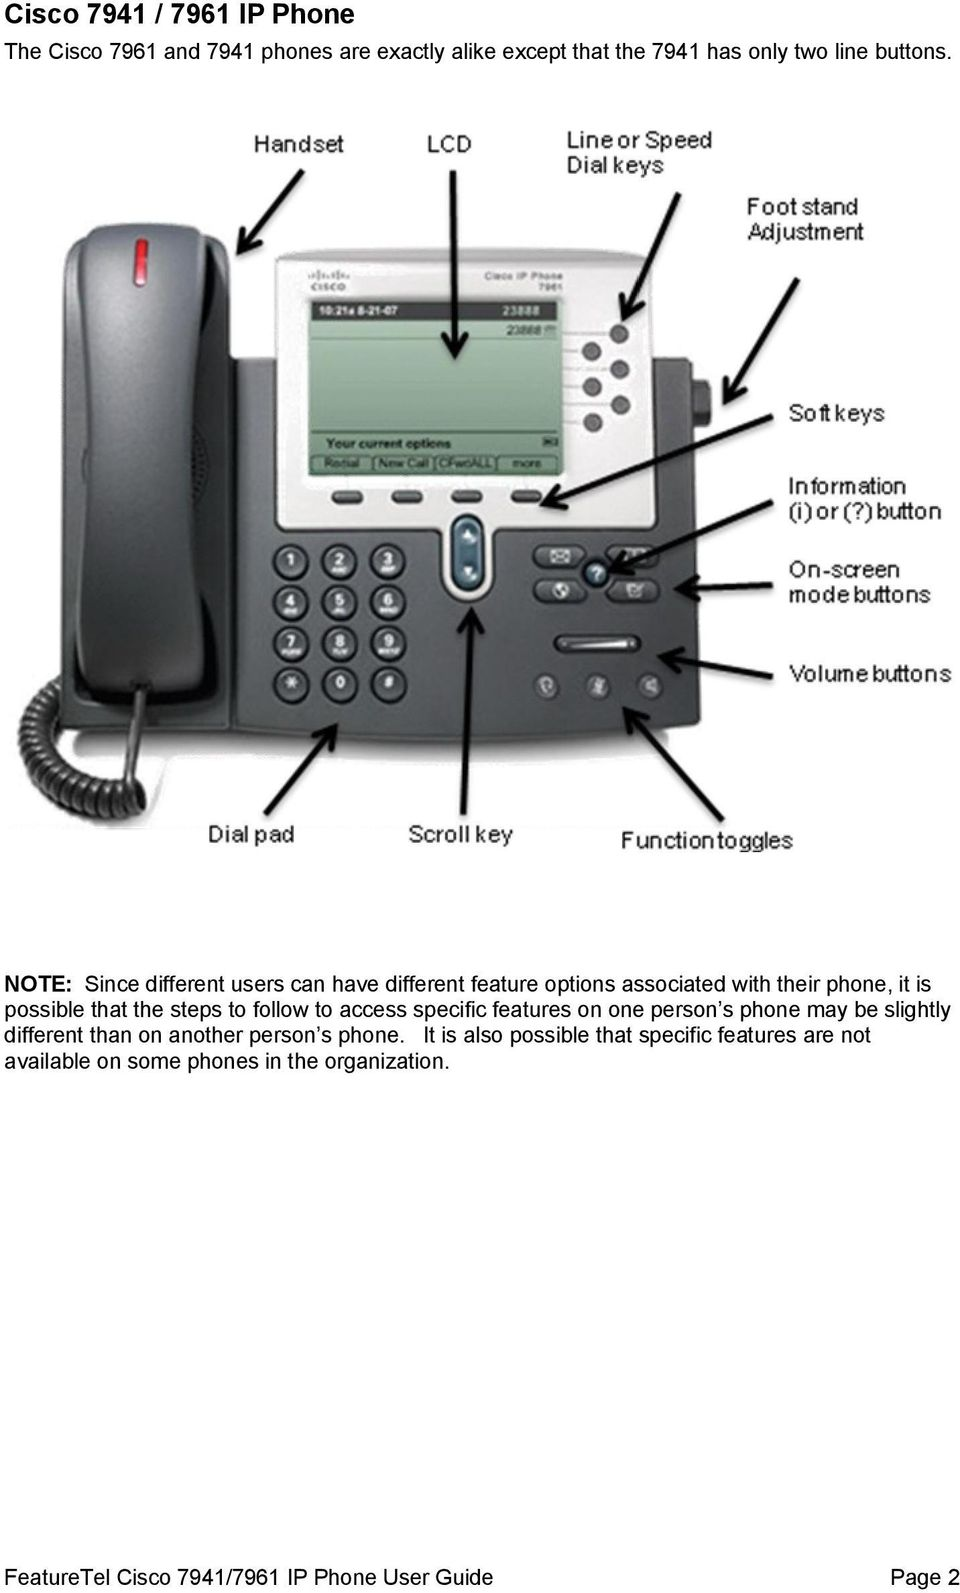 Cisco 7941 / 7961 IP Phone User Guide - PDF